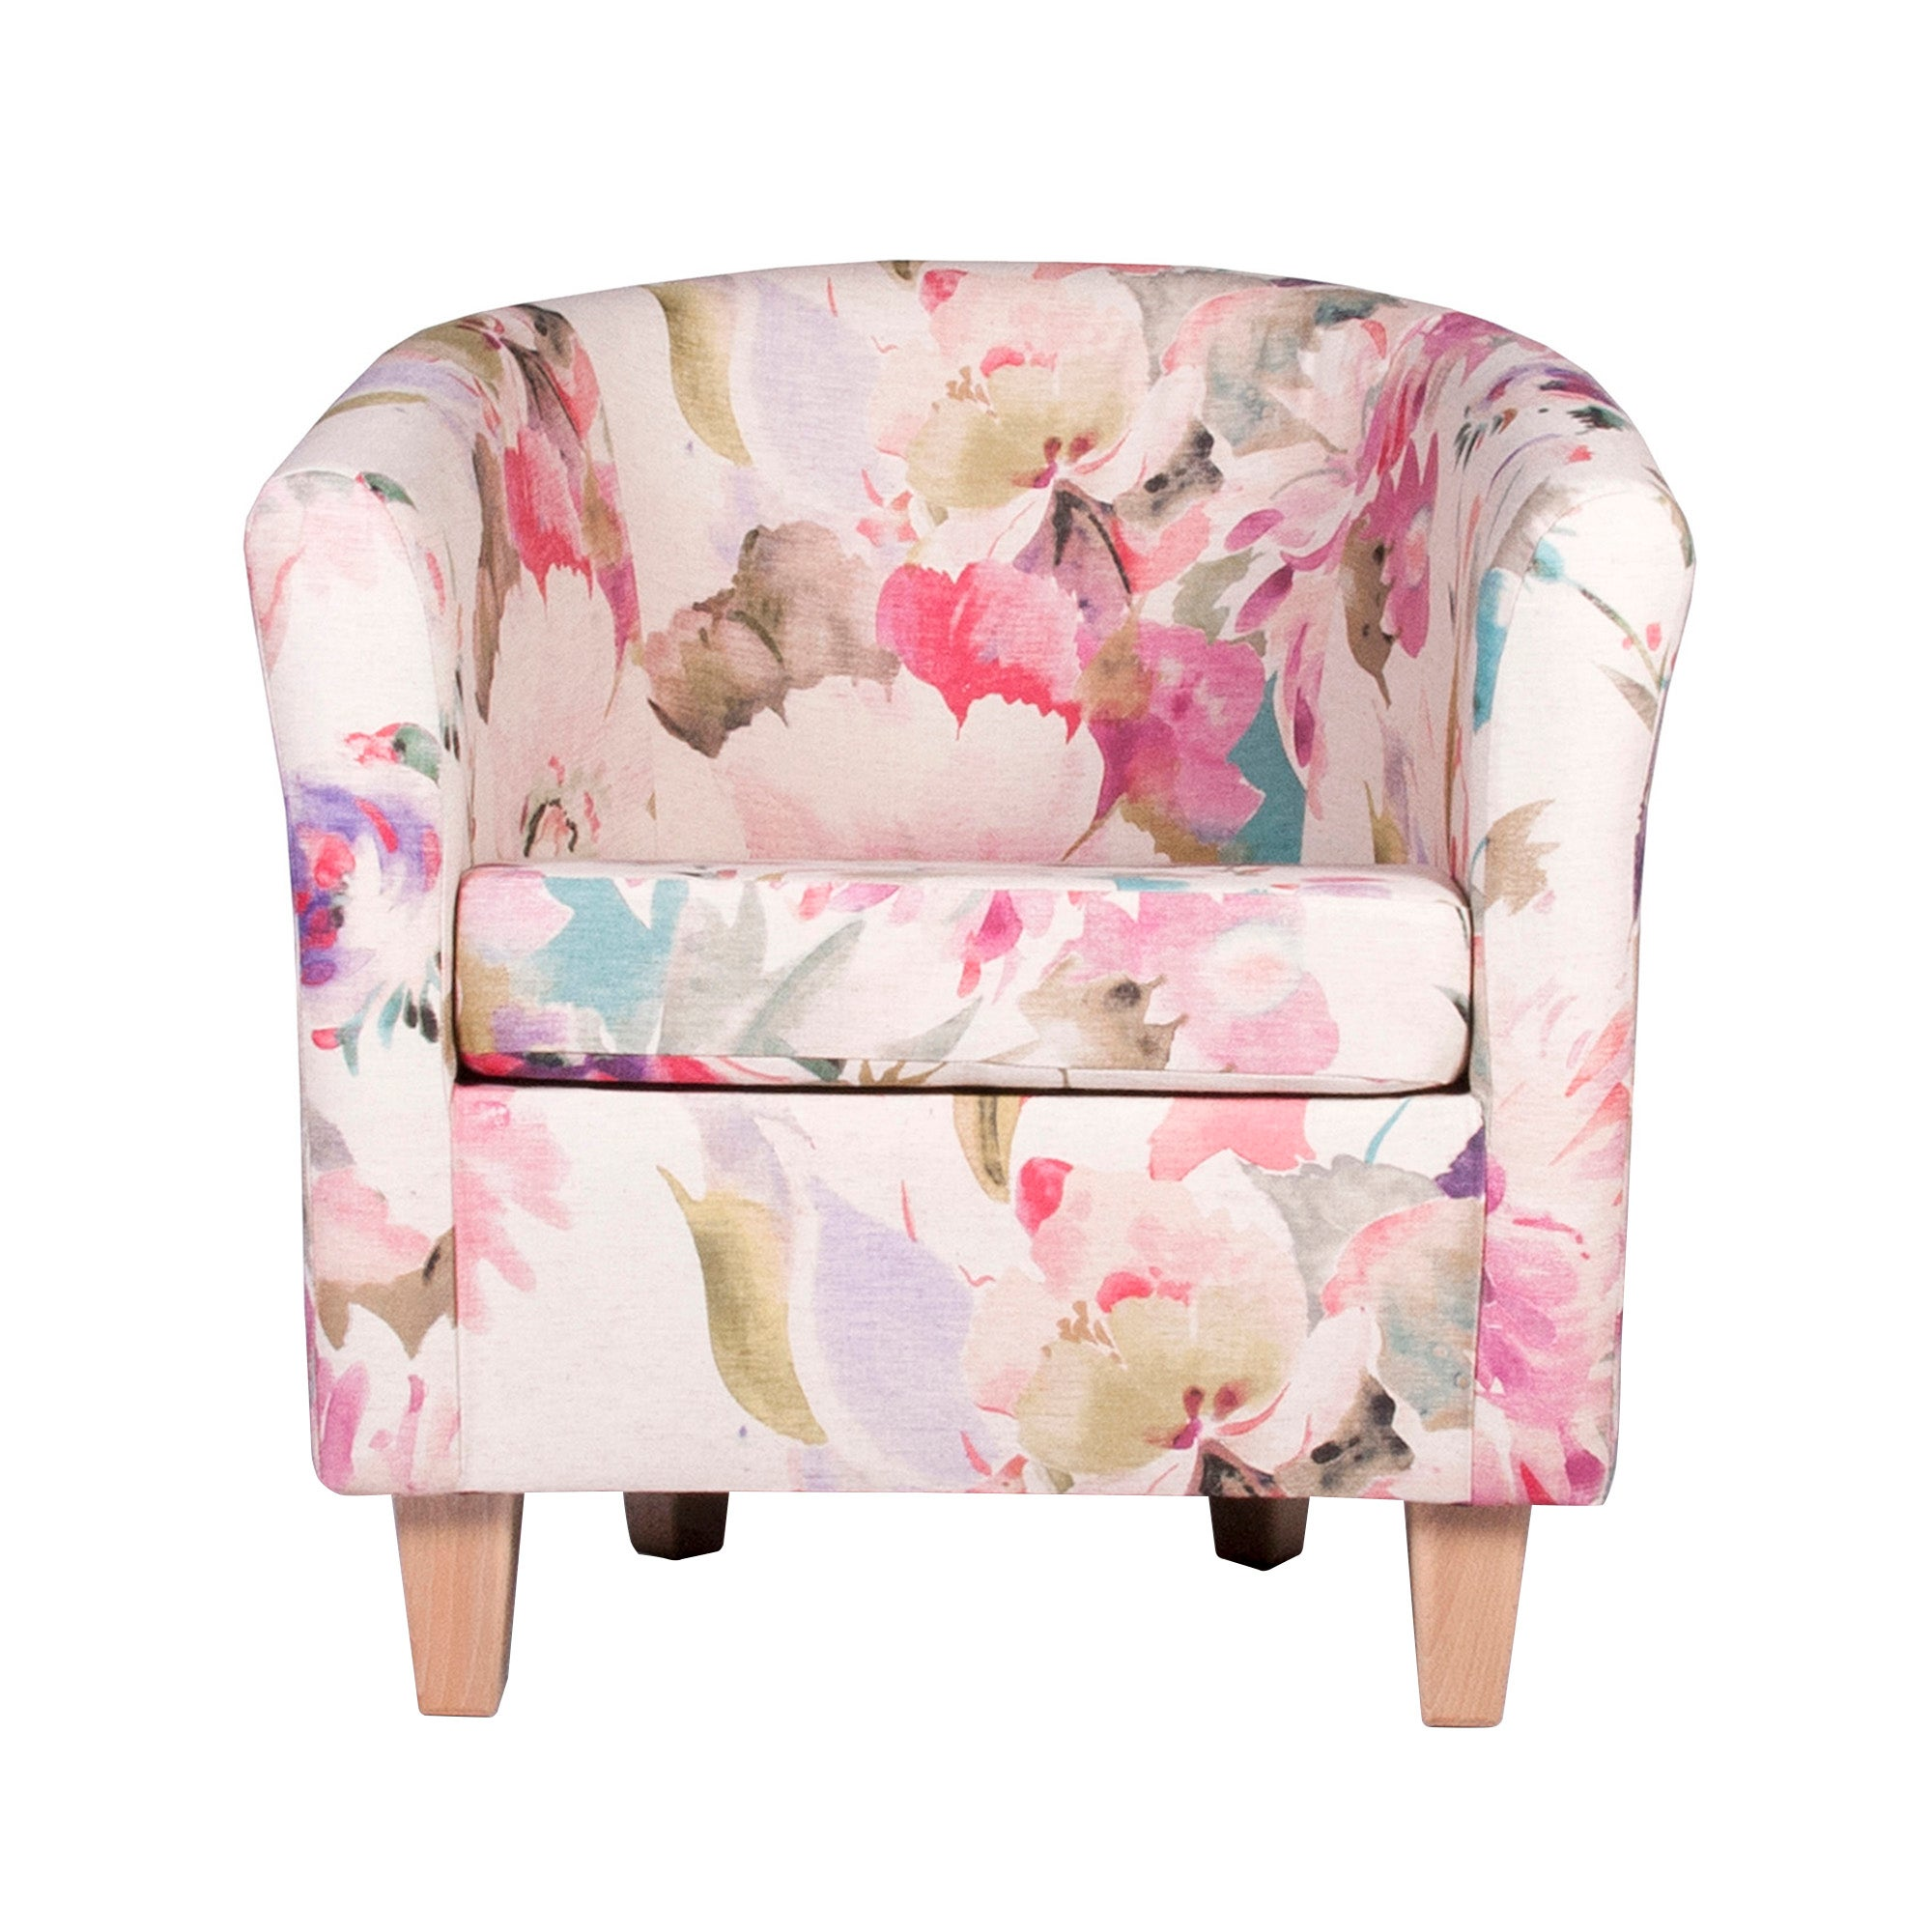 Floral Bloom Tub Chair